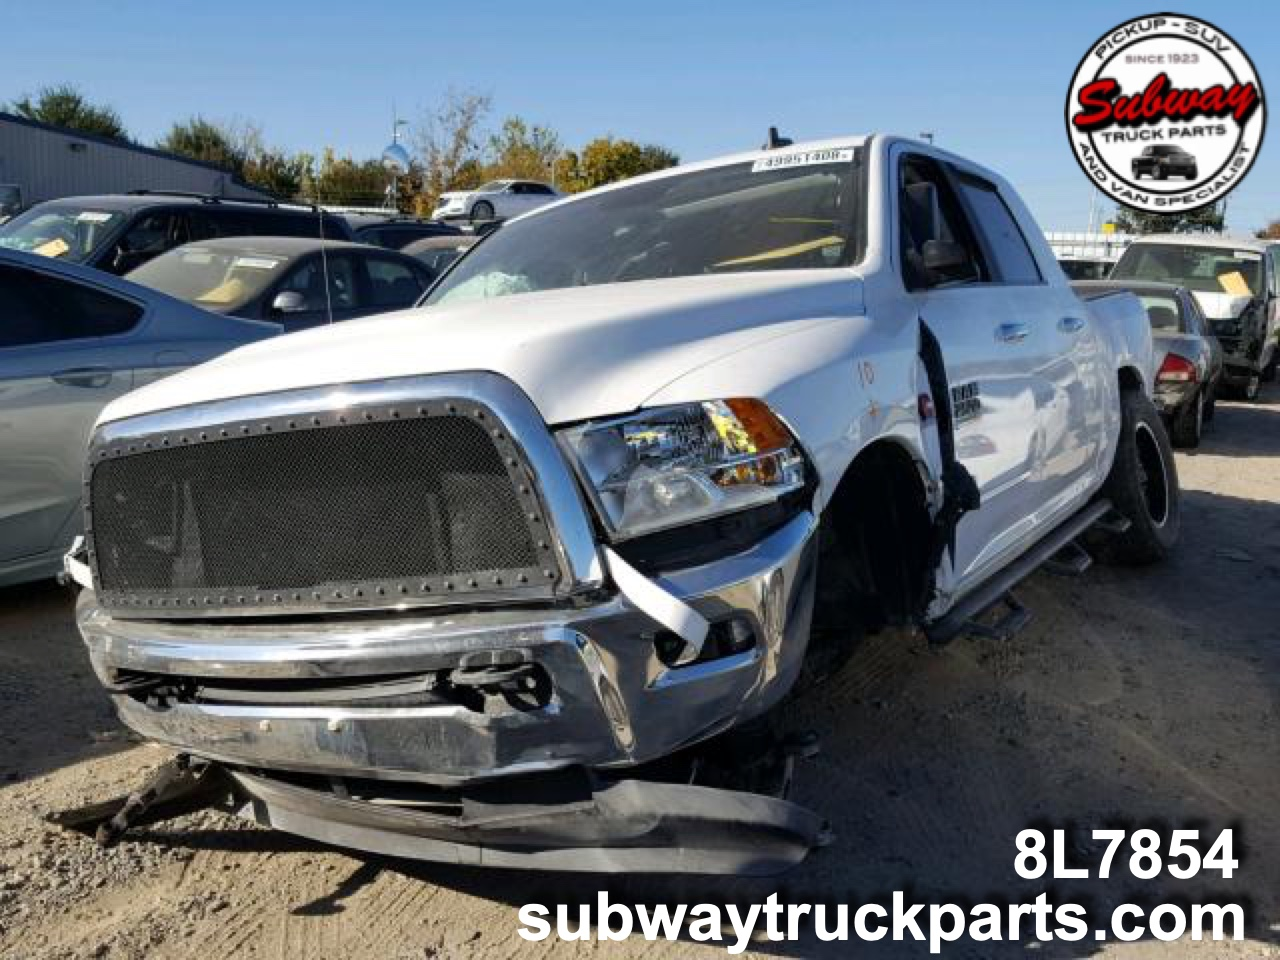 Used Parts 2016 Dodge Ram 2500 Mega Cab 67l 4x4 Subway Truck Windshjeld 04 Jeep Liberty Fuse Diagram For Washer 1 10